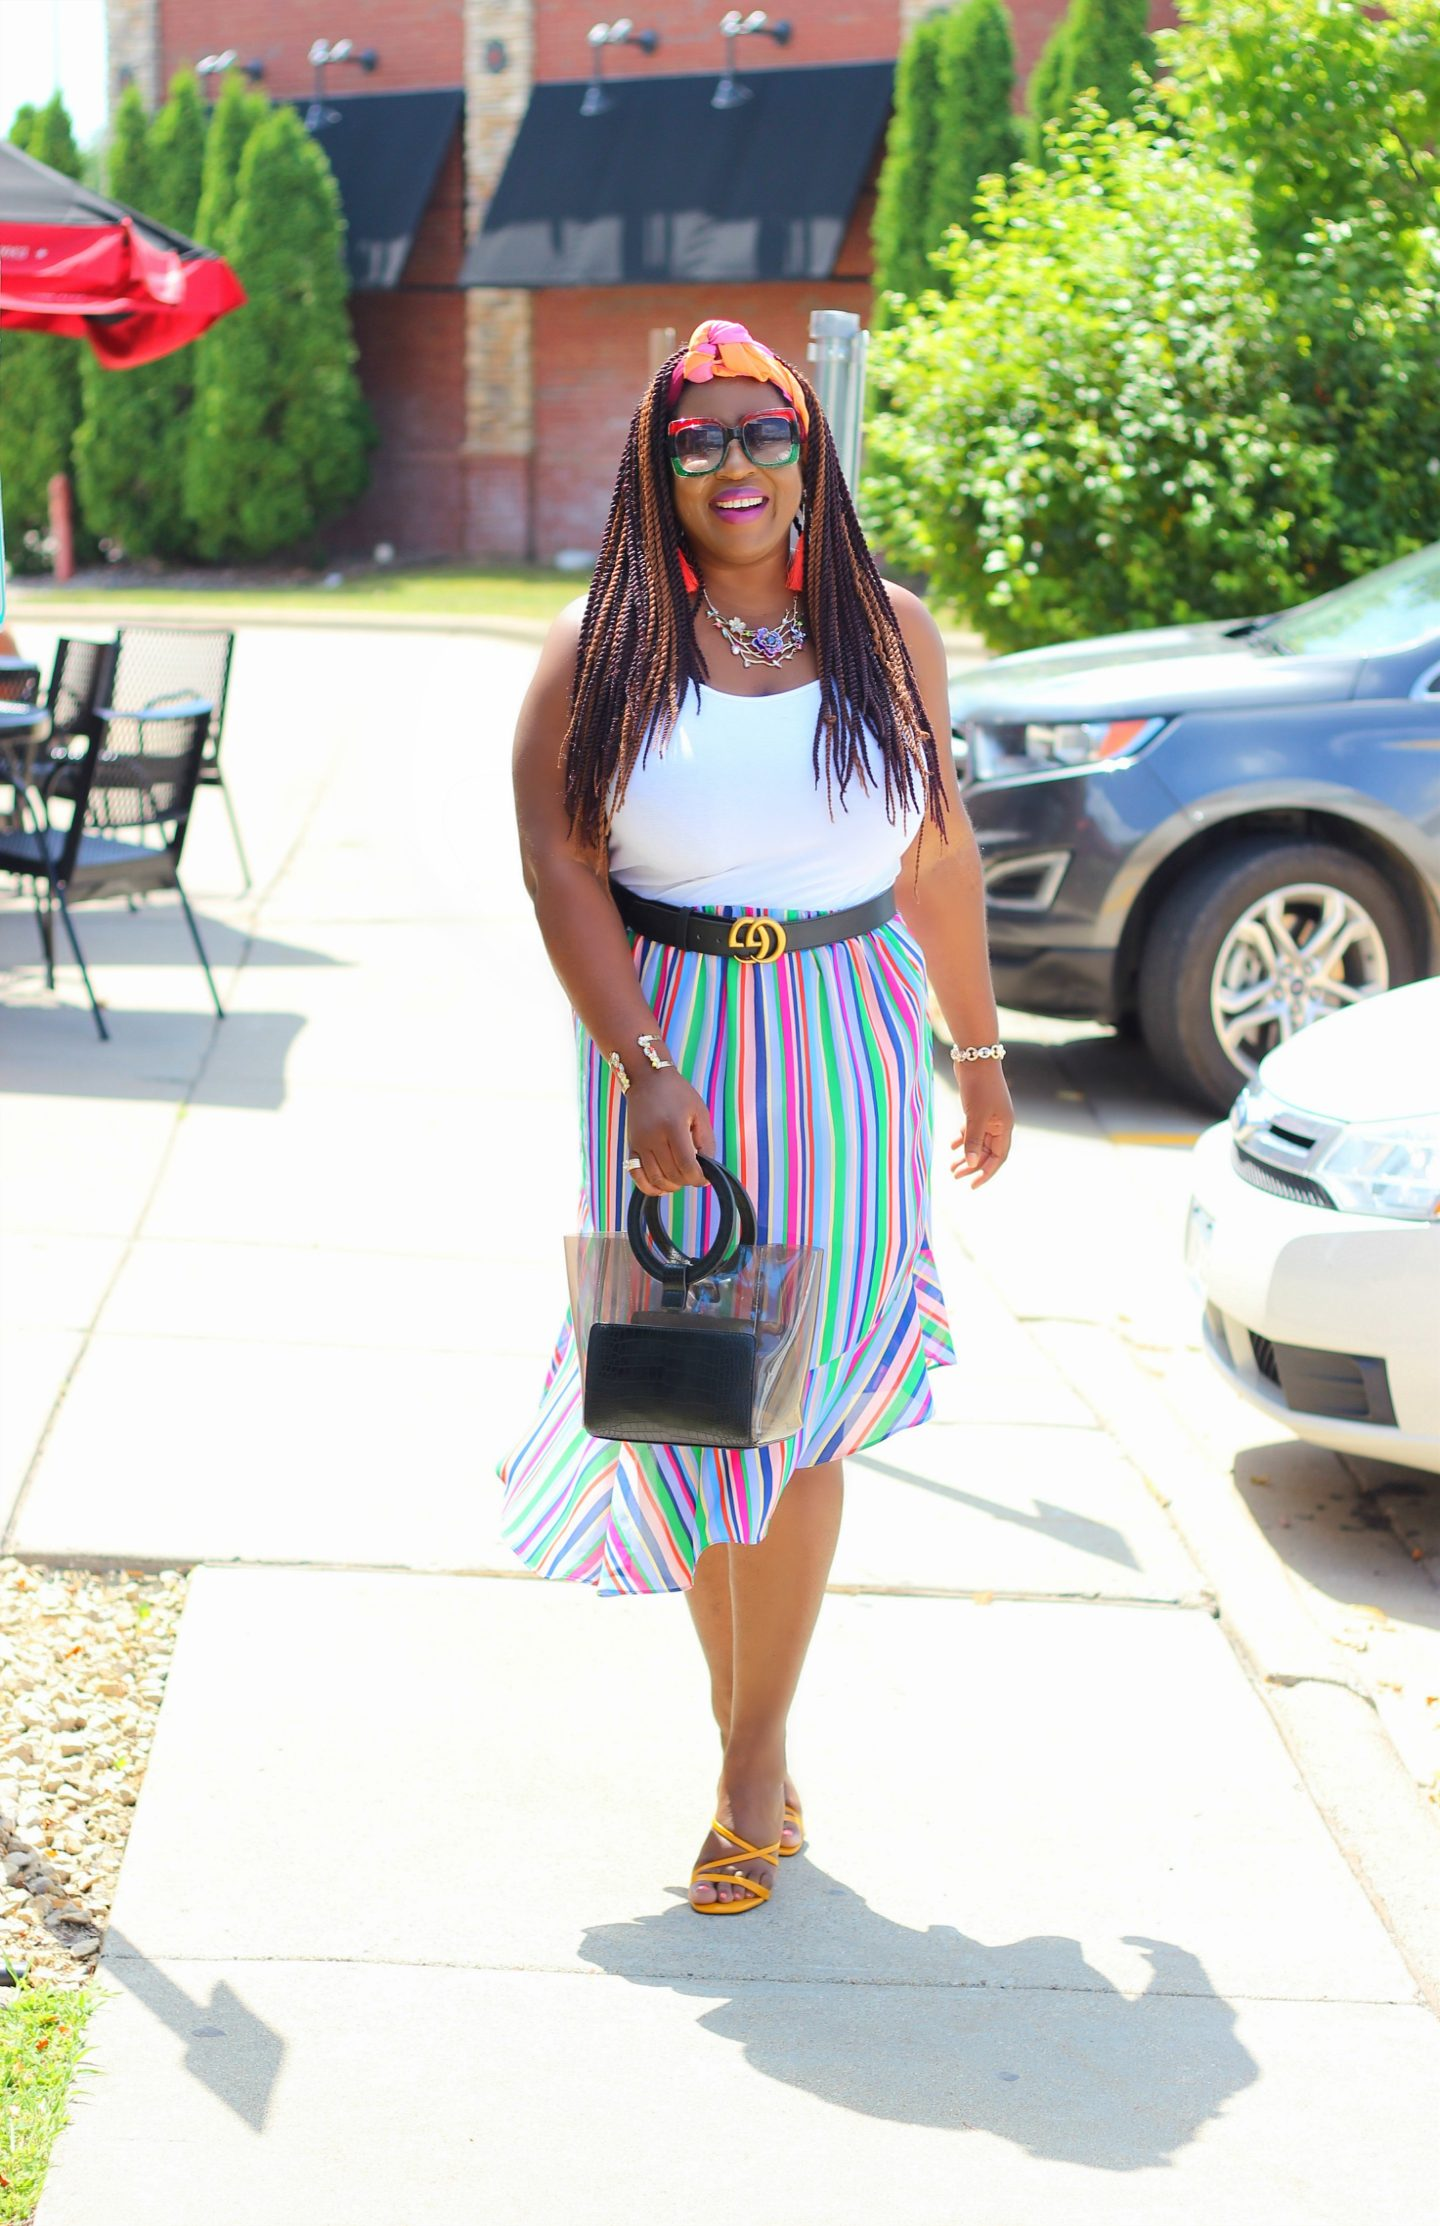 Multicolored Striped Skirt + White Tank Top